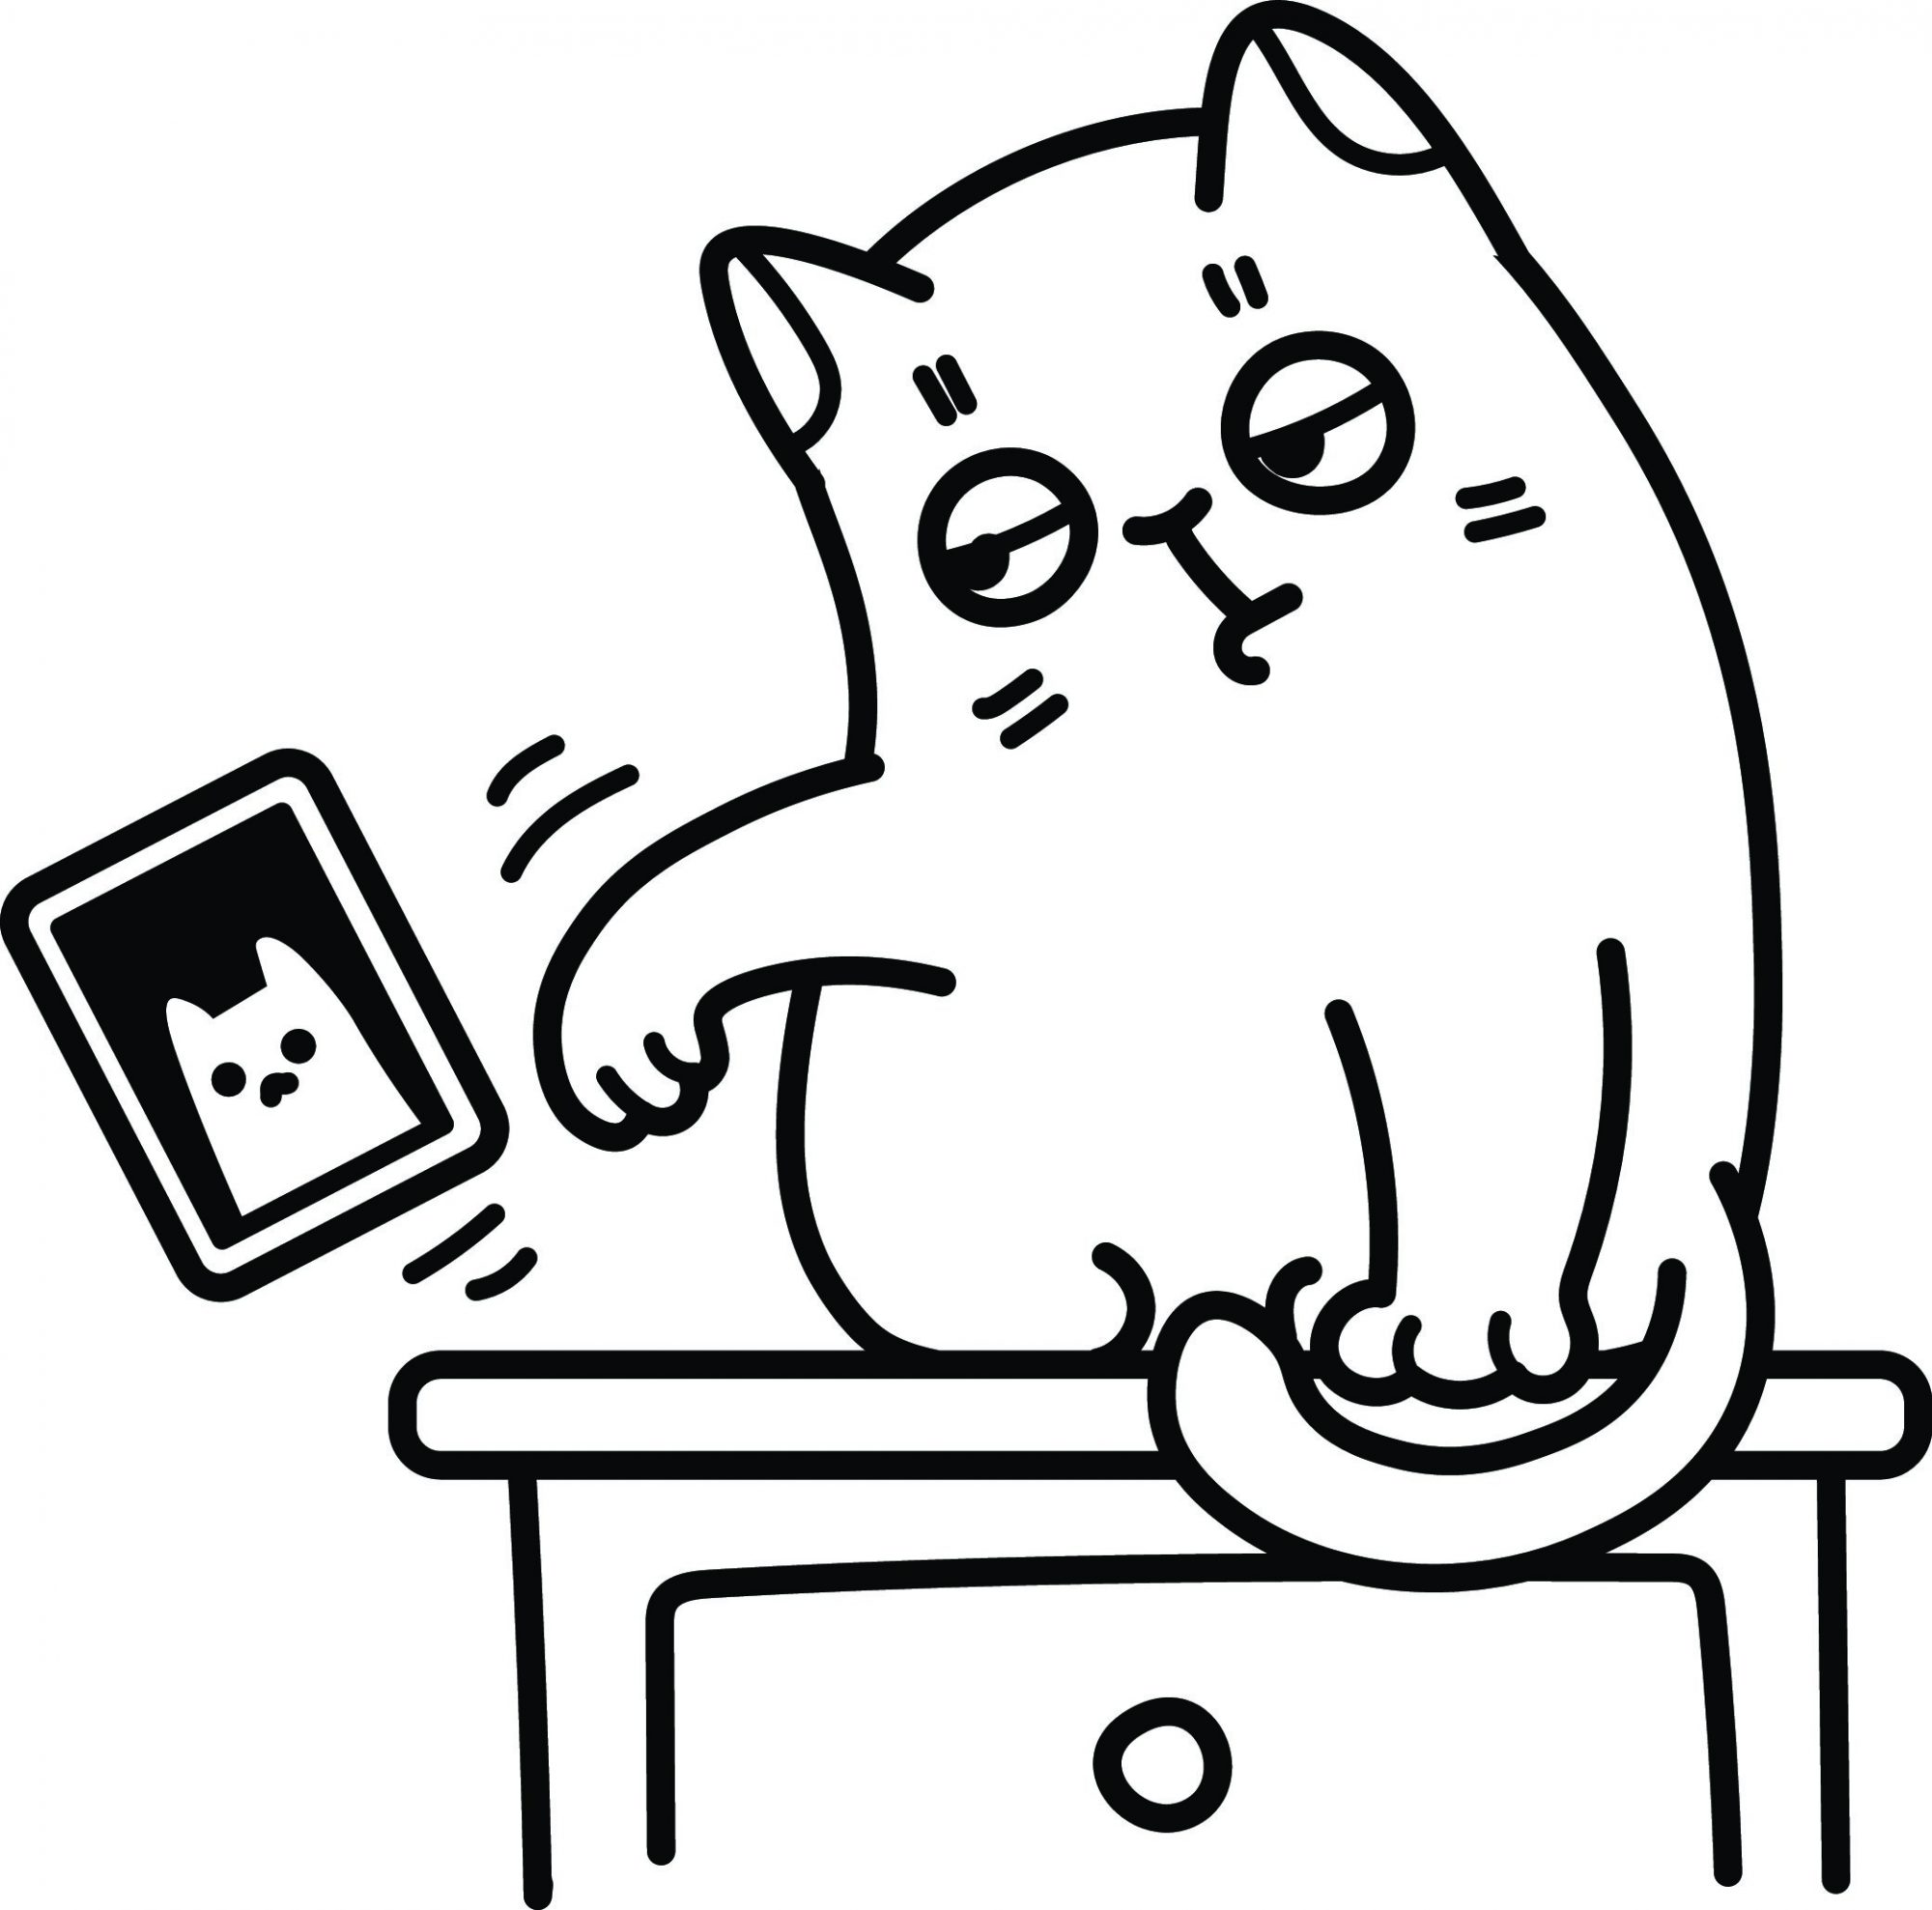 A cartoon of a cat knocking a photo off a desk.